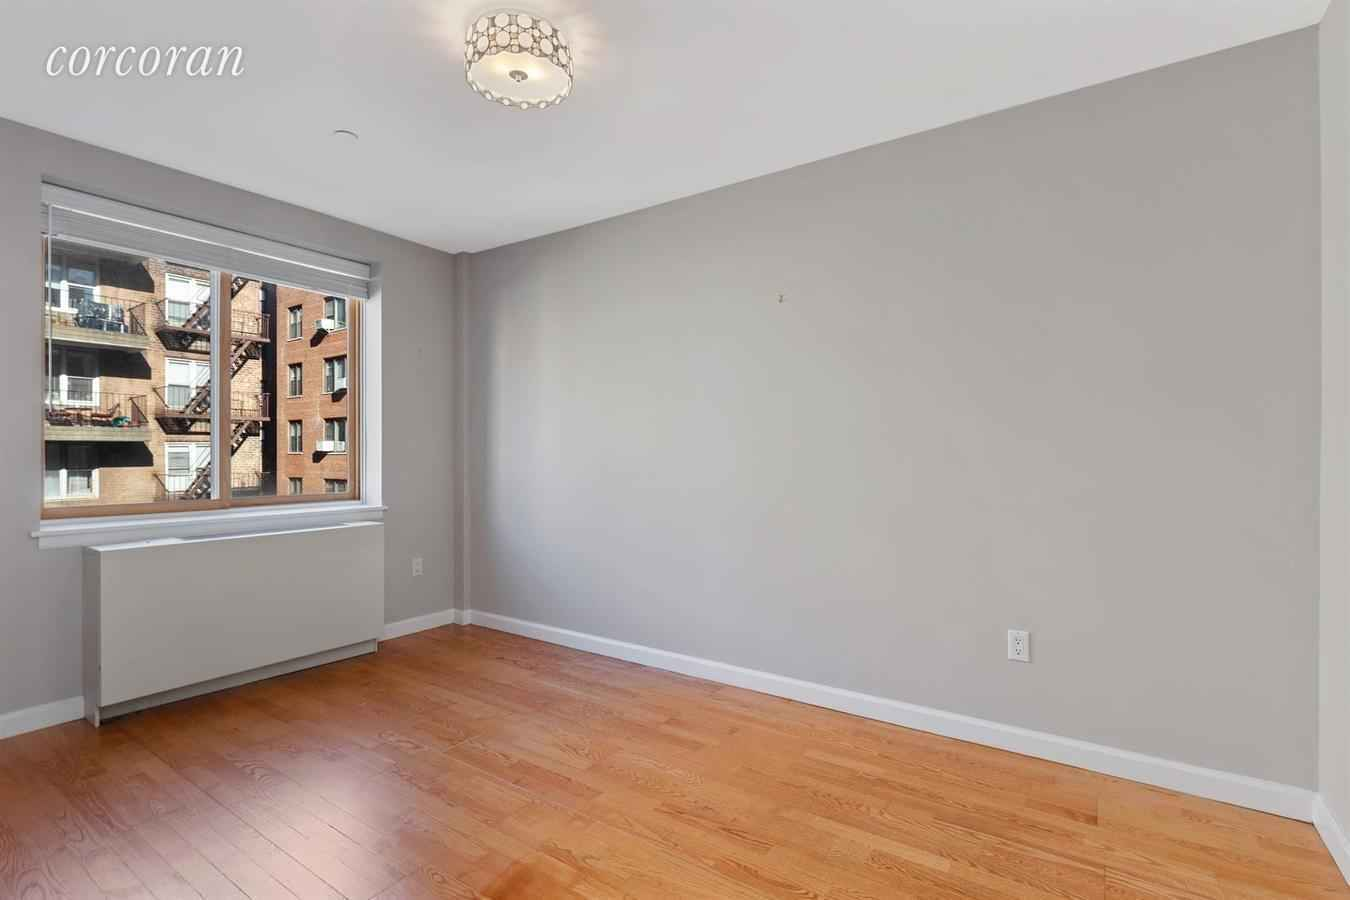 Apartment for sale at 3800 Blackstone Avenue, Apt 4S